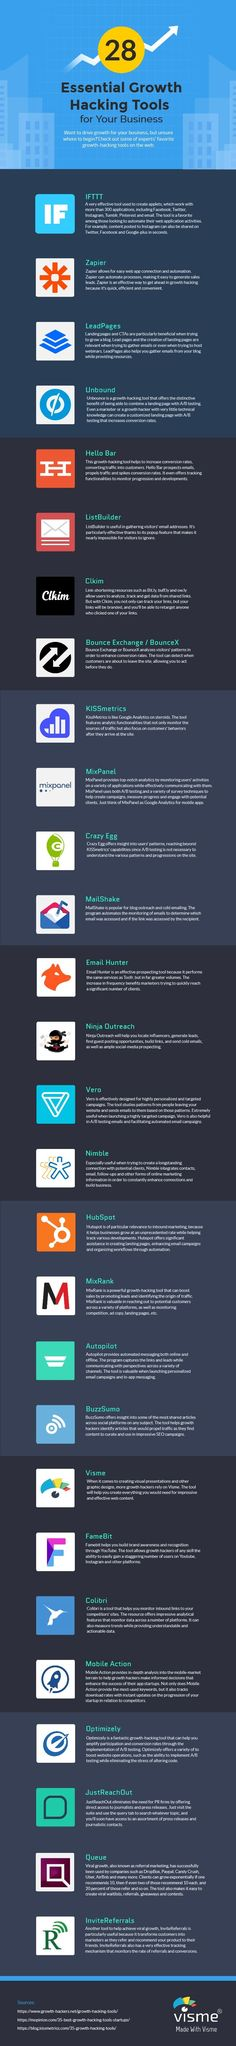 28 Essential Growth Hacking Tools to Rapidly Build Your Business [Infographic]